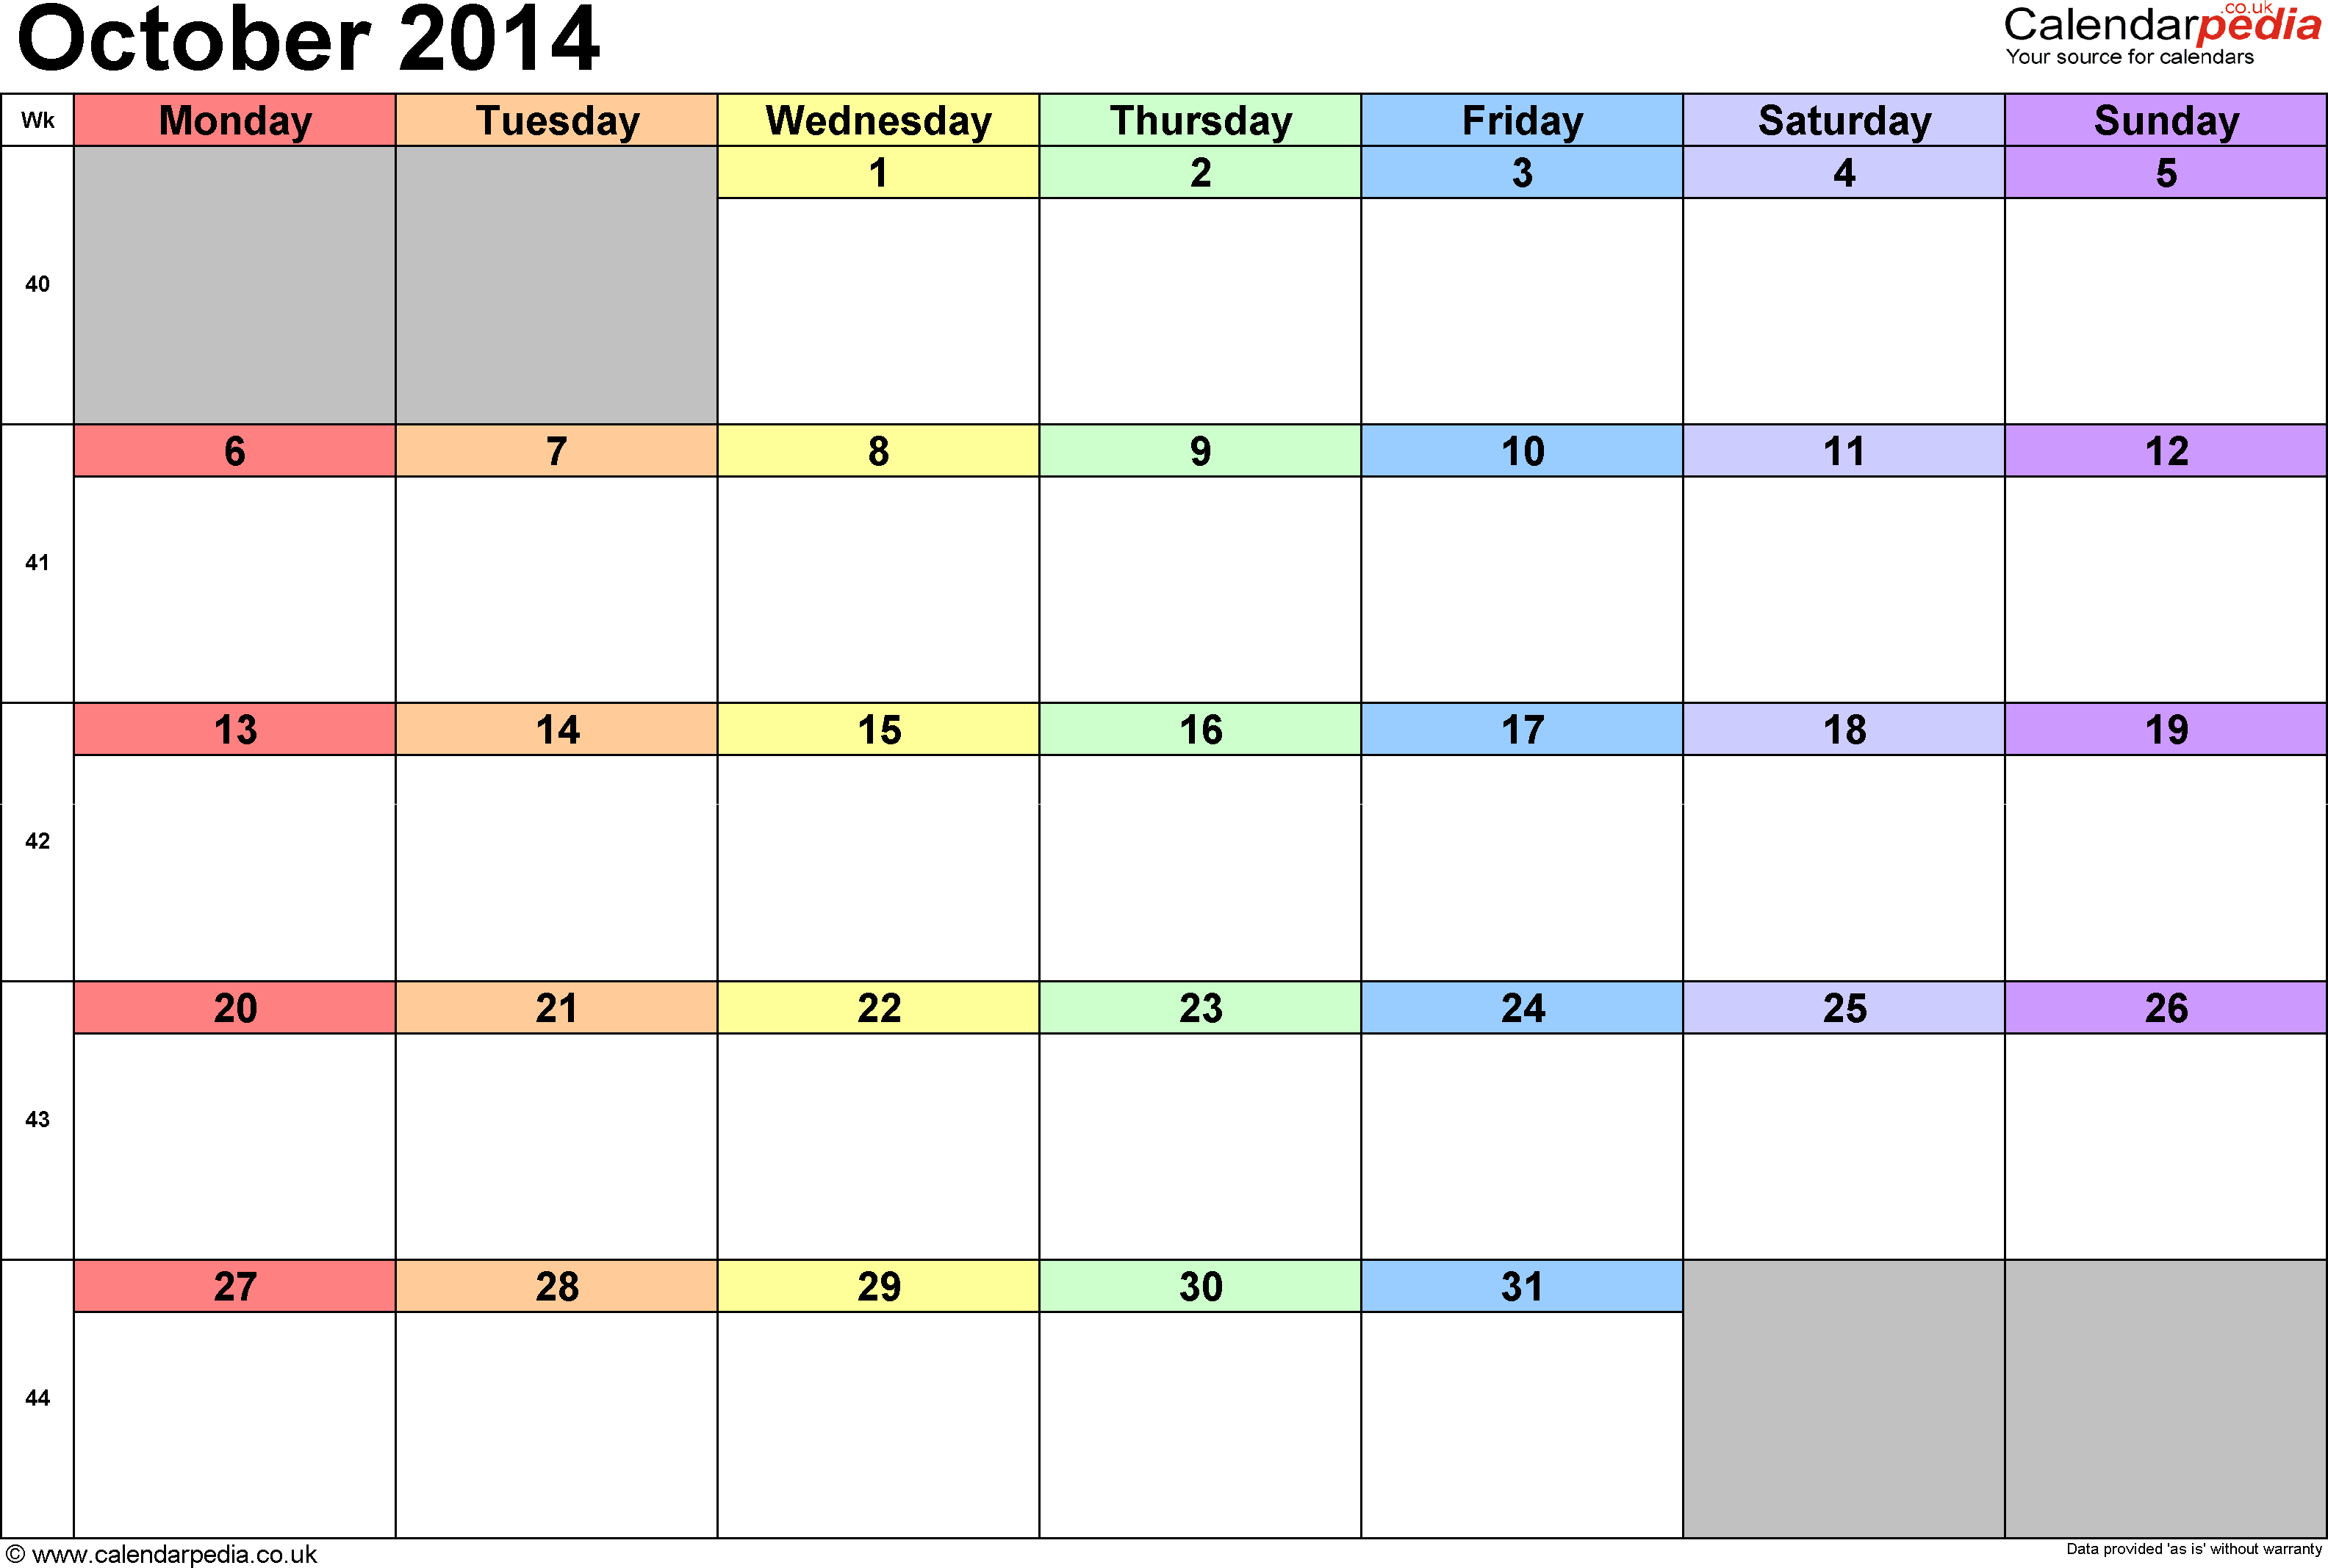 Calendar October 2014, landscape orientation, 1 page, with UK bank holidays and week numbers